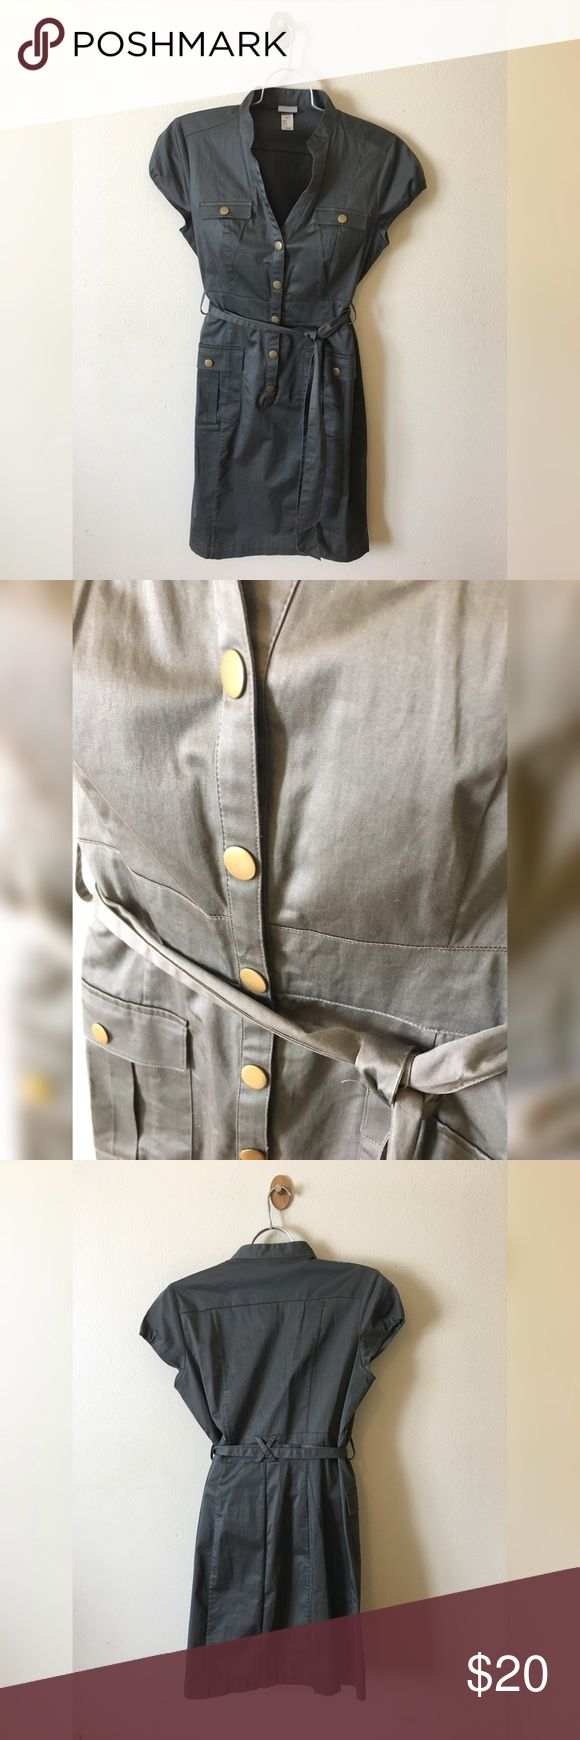 *NWOT* H&M belted shirt dress H&M military green belted shirt dress; button up front with matching sash H&M Dresses